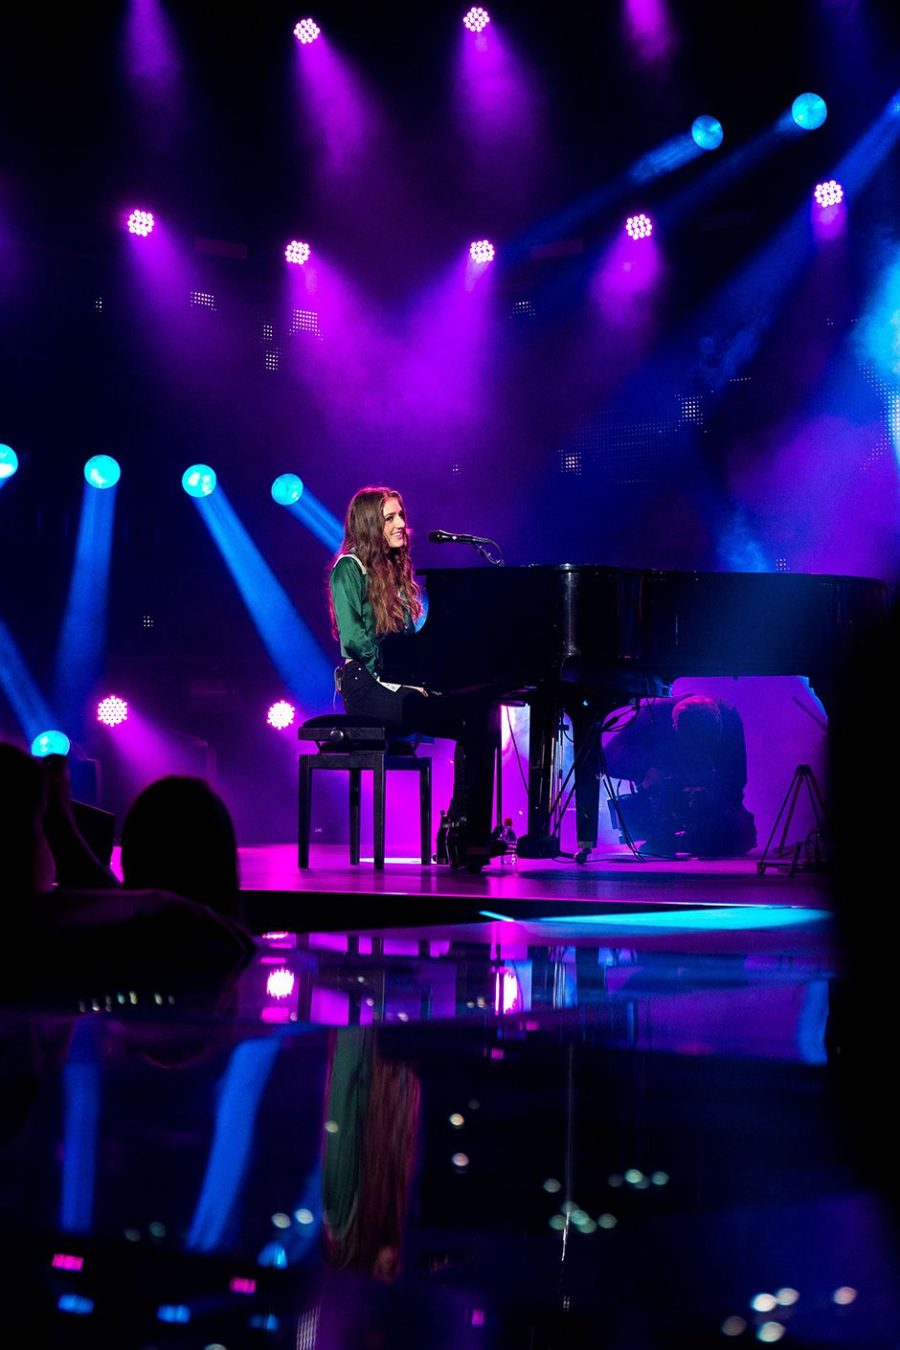 SWR3 New Pop Festival 2013 | Birdy